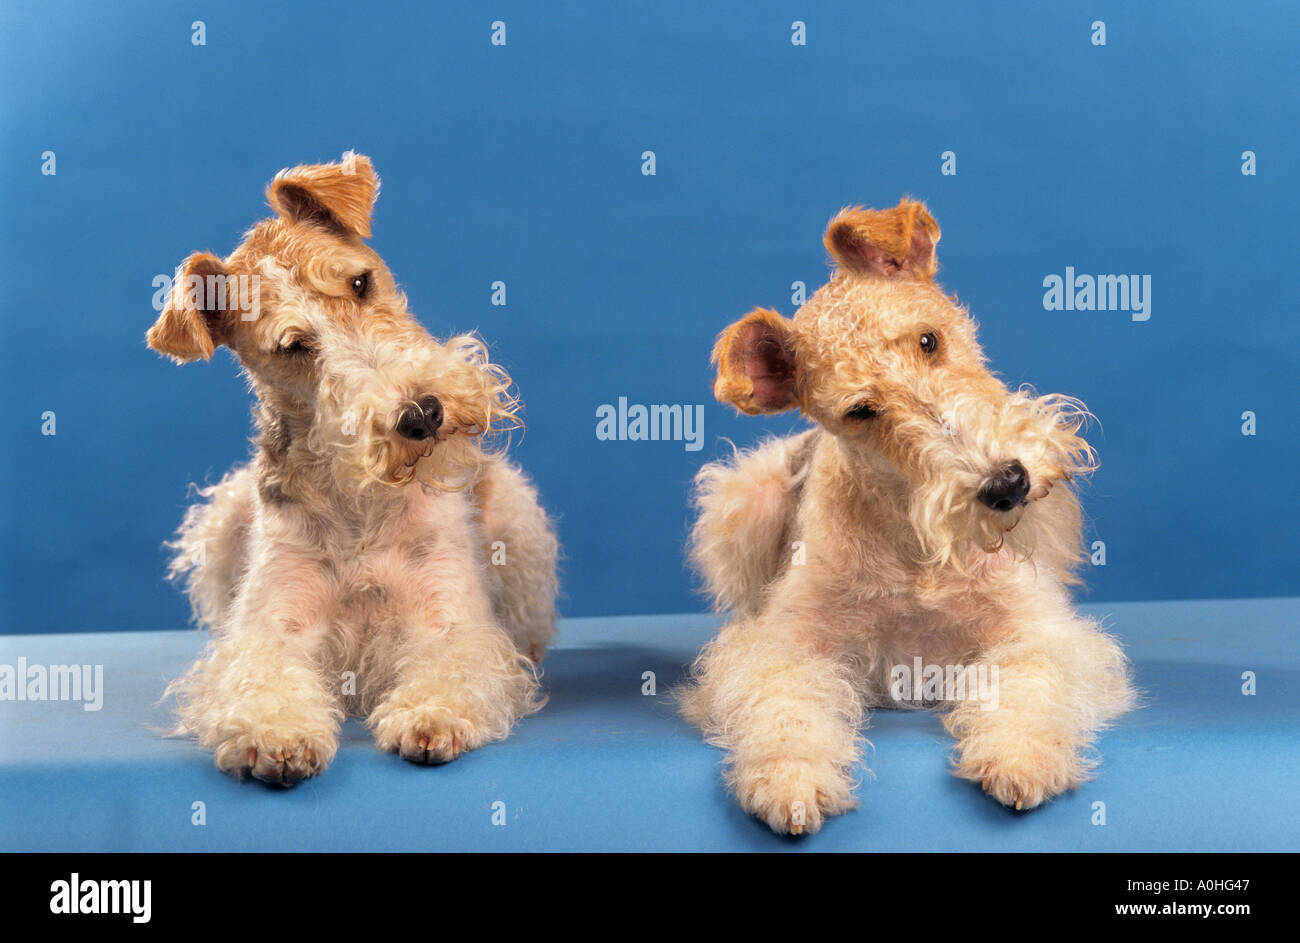 two Wirehaired Fox Terrier dogs - lying Stock Photo: 3263558 - Alamy